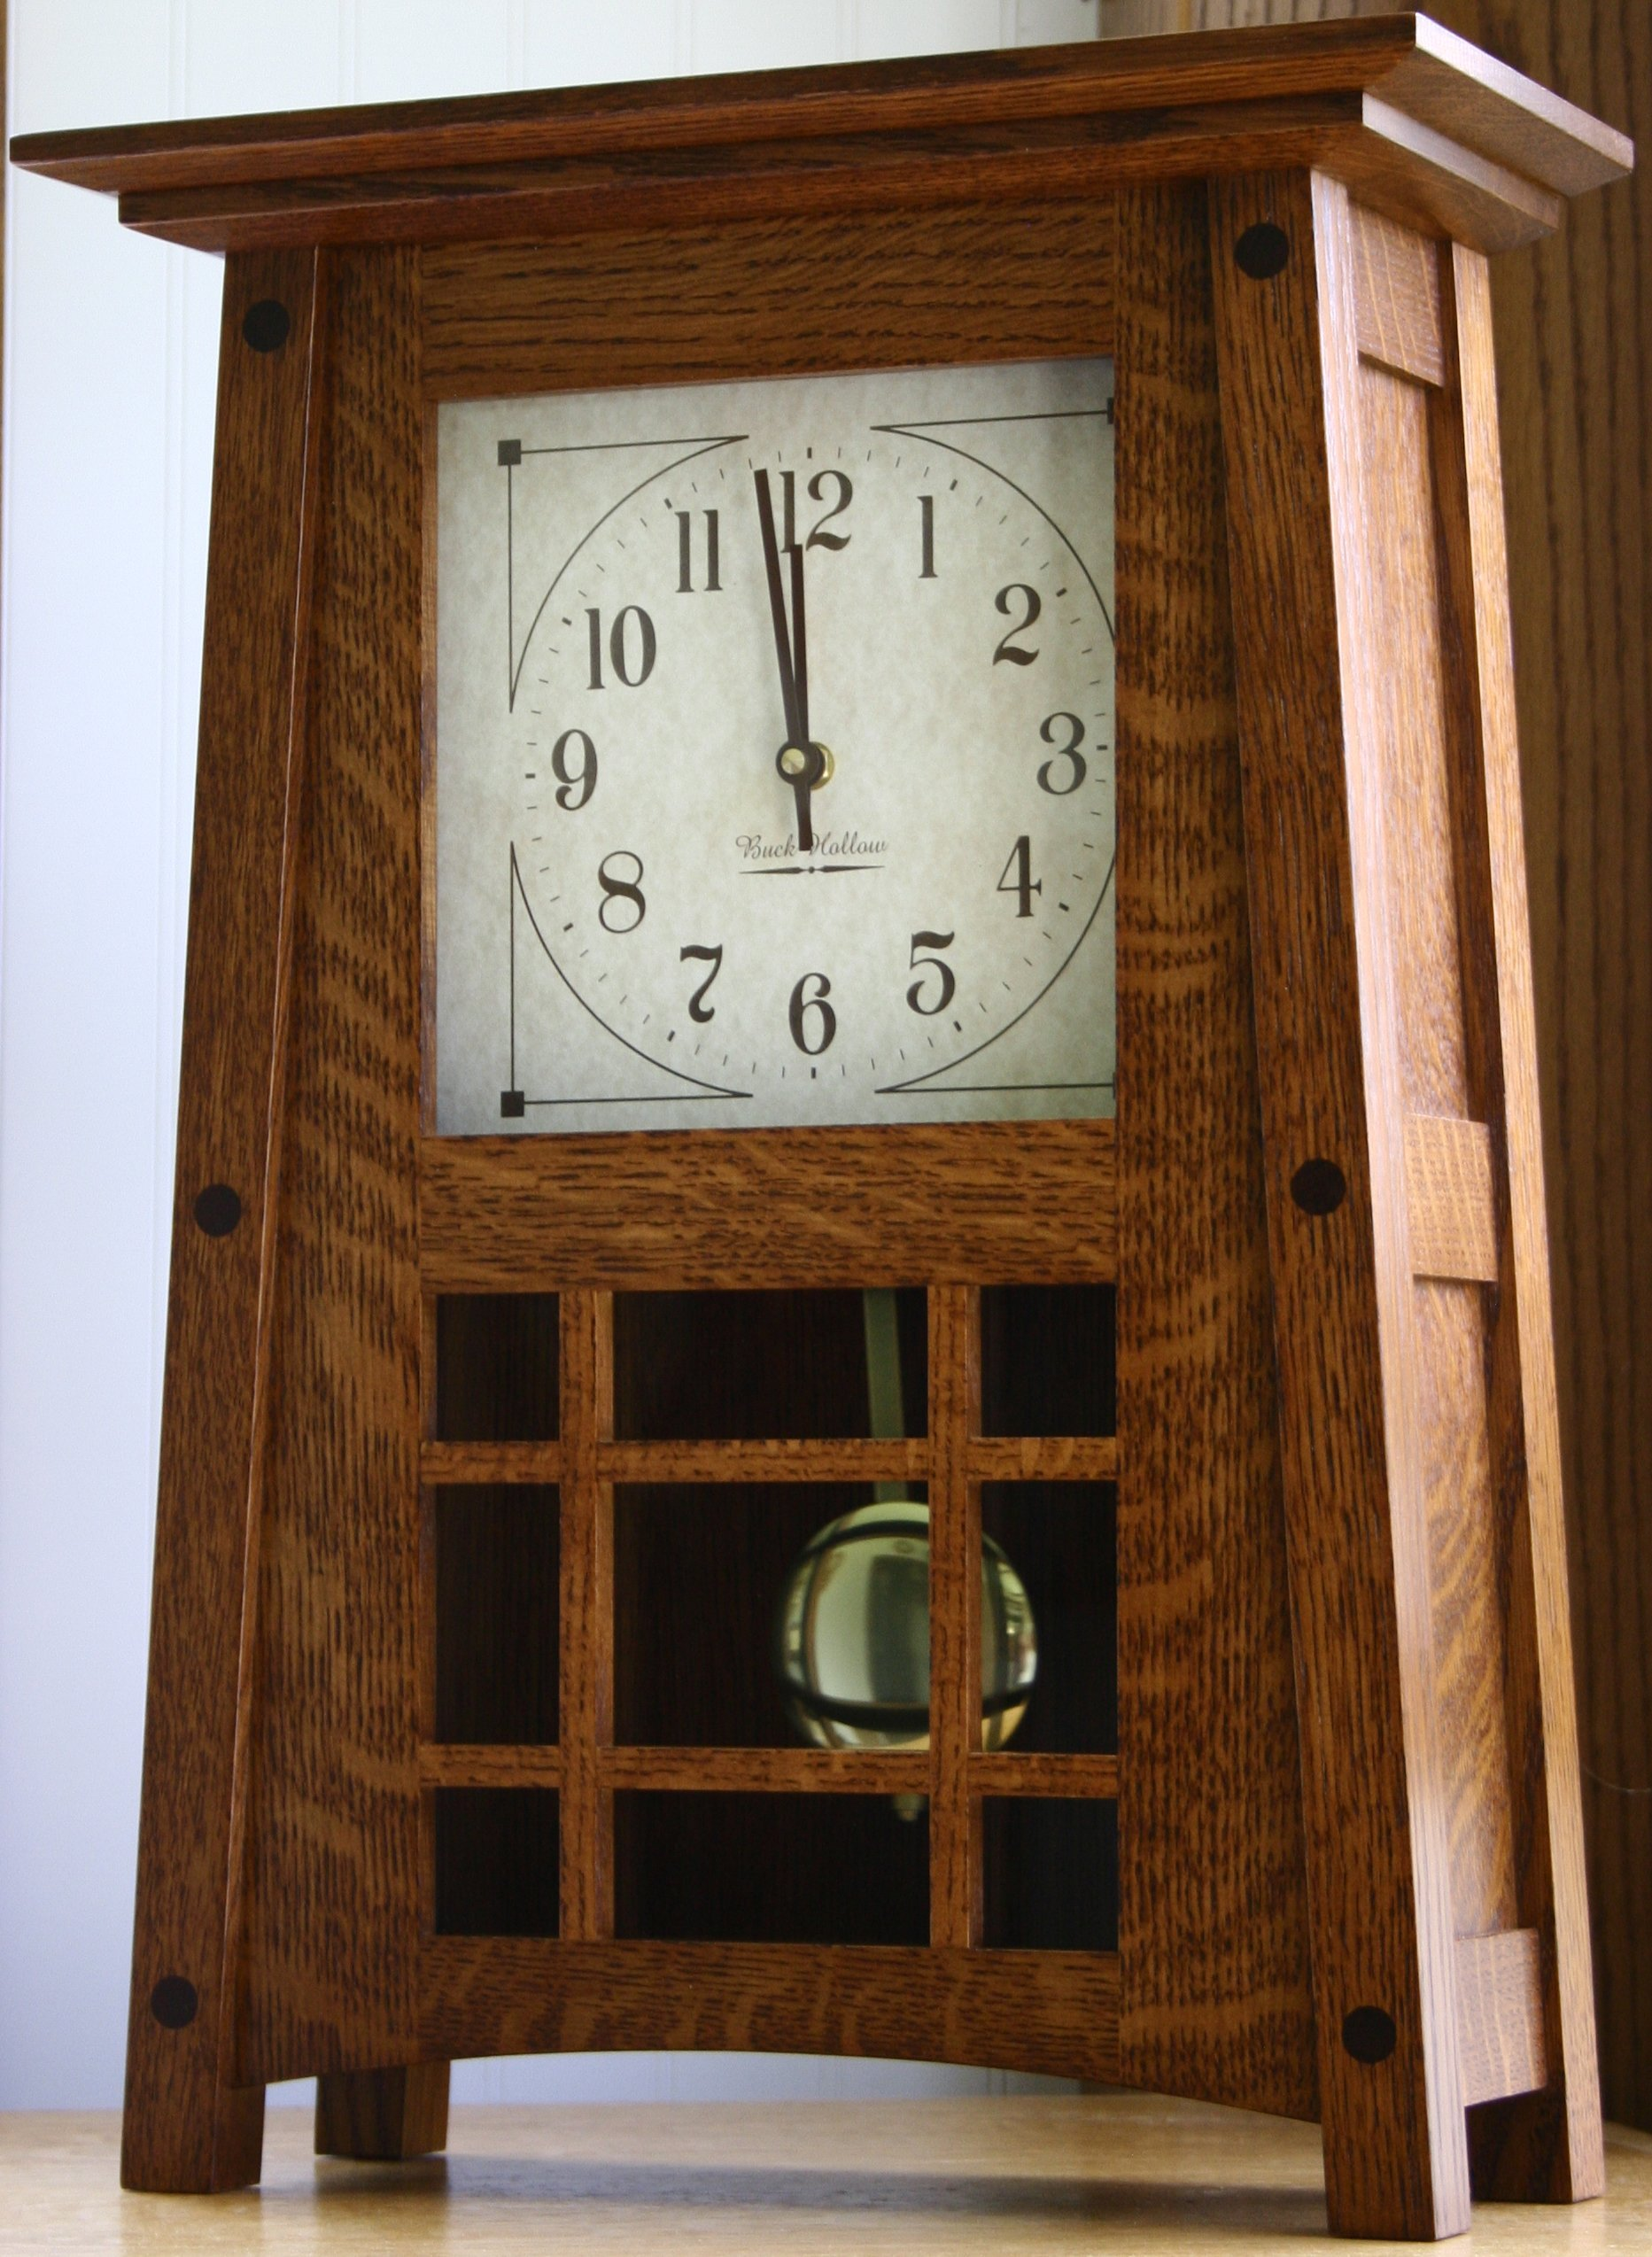 Amish Handcrafted McCoy Mantel Clock by Presto